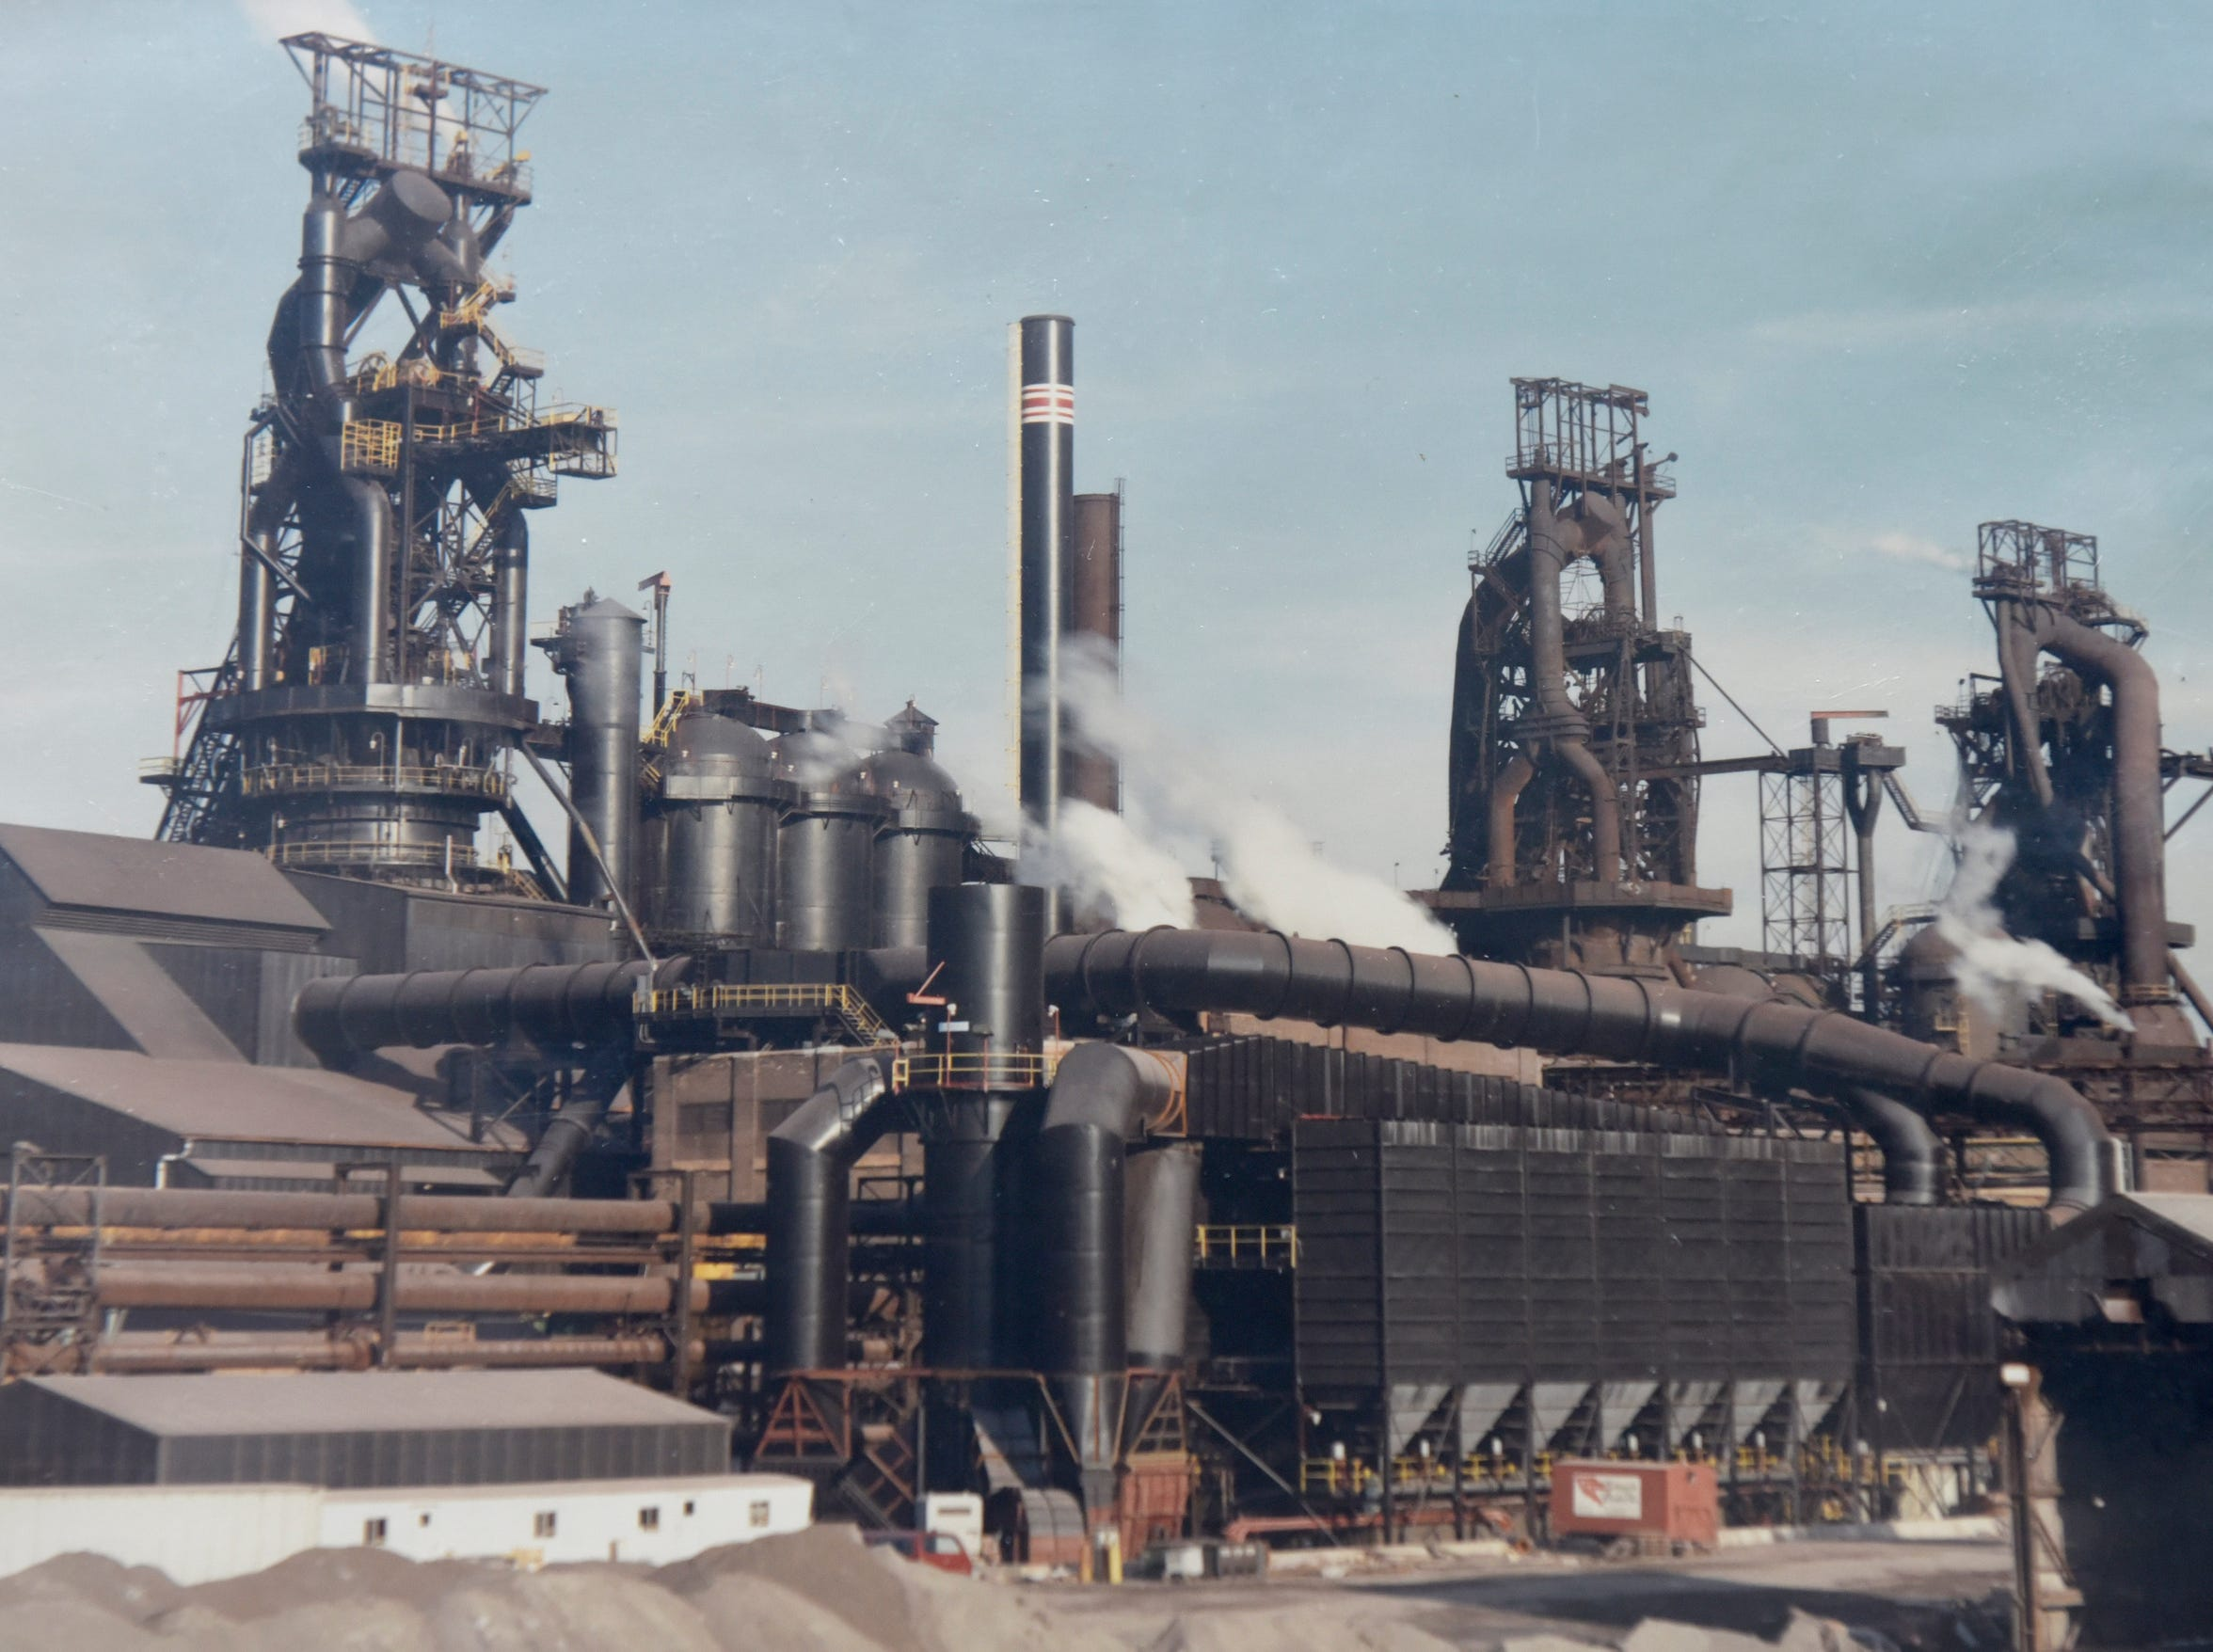 An historic photo from Great Lakes Steel.